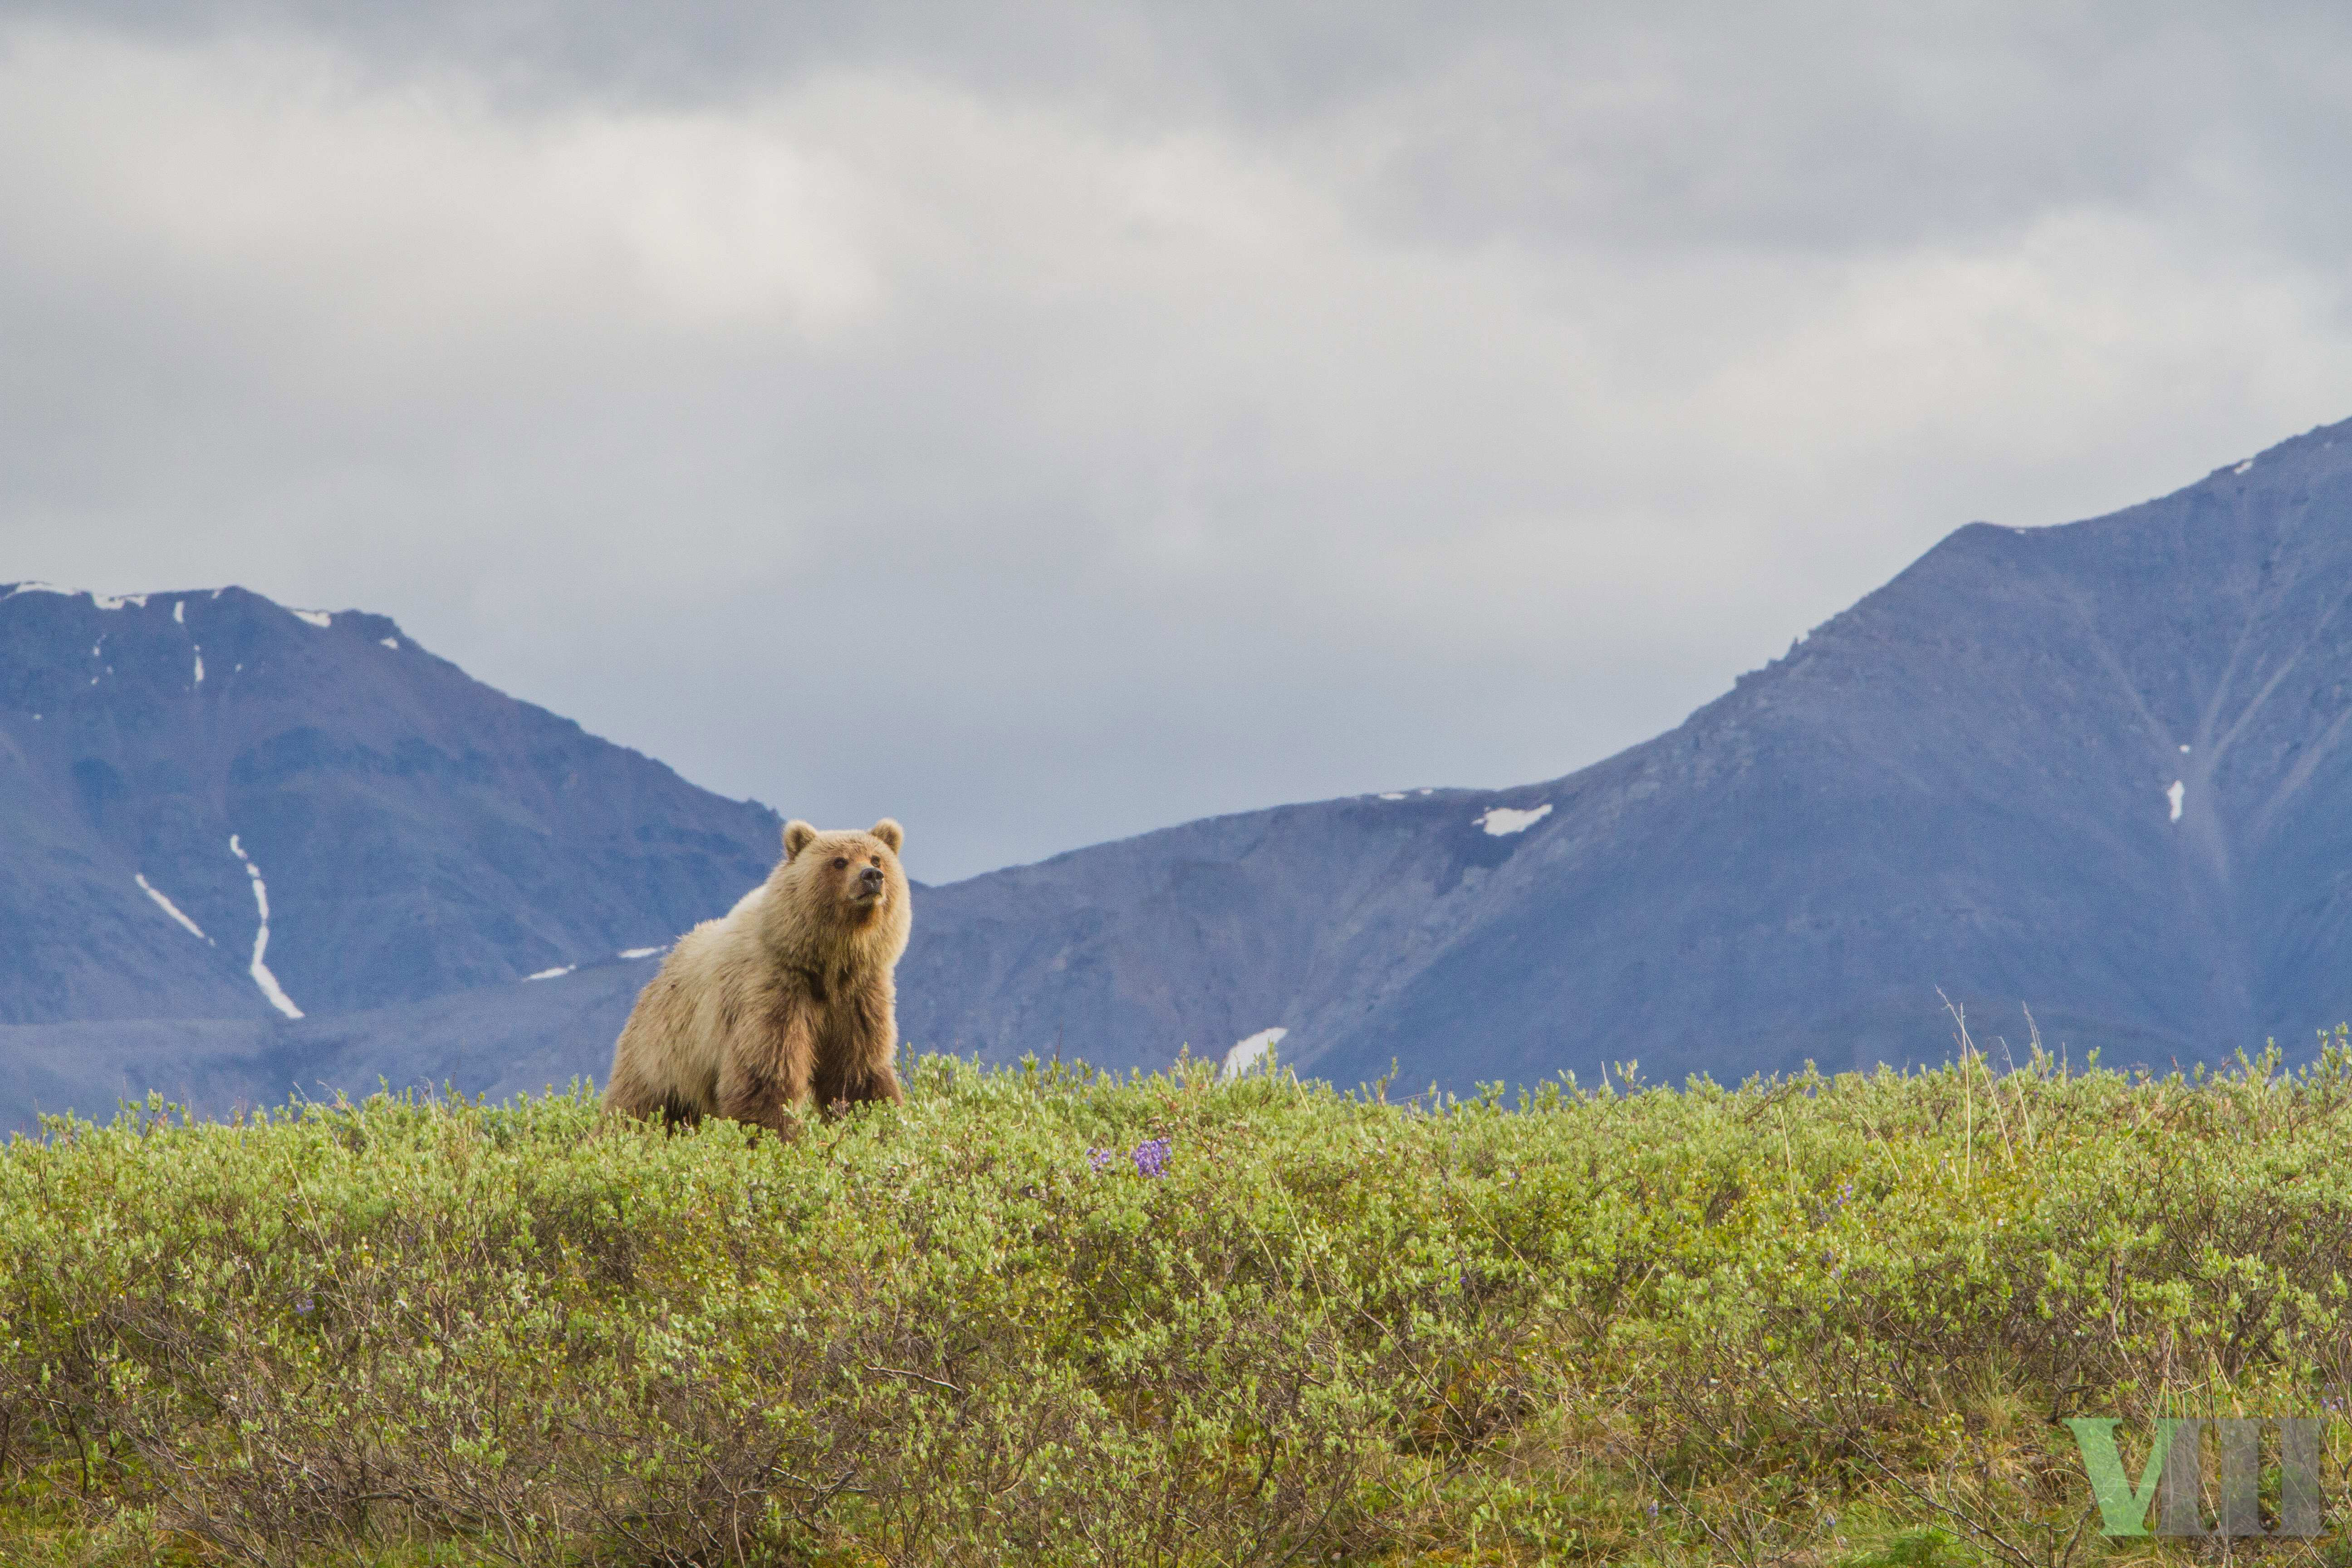 a description of the arctic national wildlife refuge Arctic national wildlife refuge description: renowned for its wildlife, arctic refuge is inhabited by 45 species of land and marine mammals, ranging from the pygmy shrew to the bowhead whale.